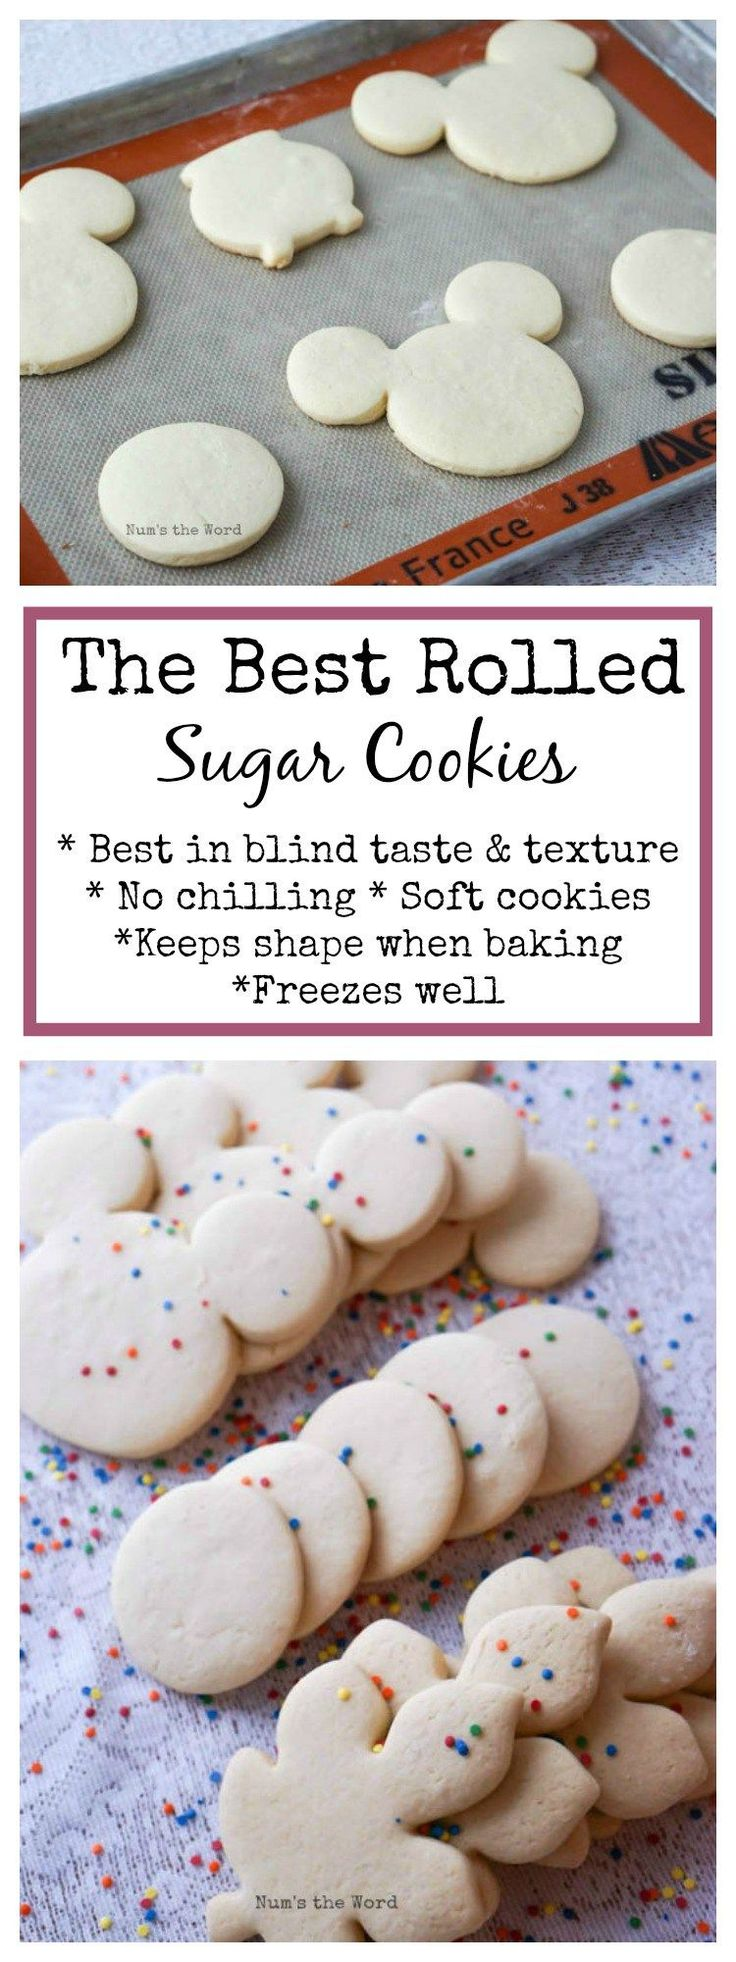 4763 best recipes--cookies images on Pinterest   Cookies, Treats and ...